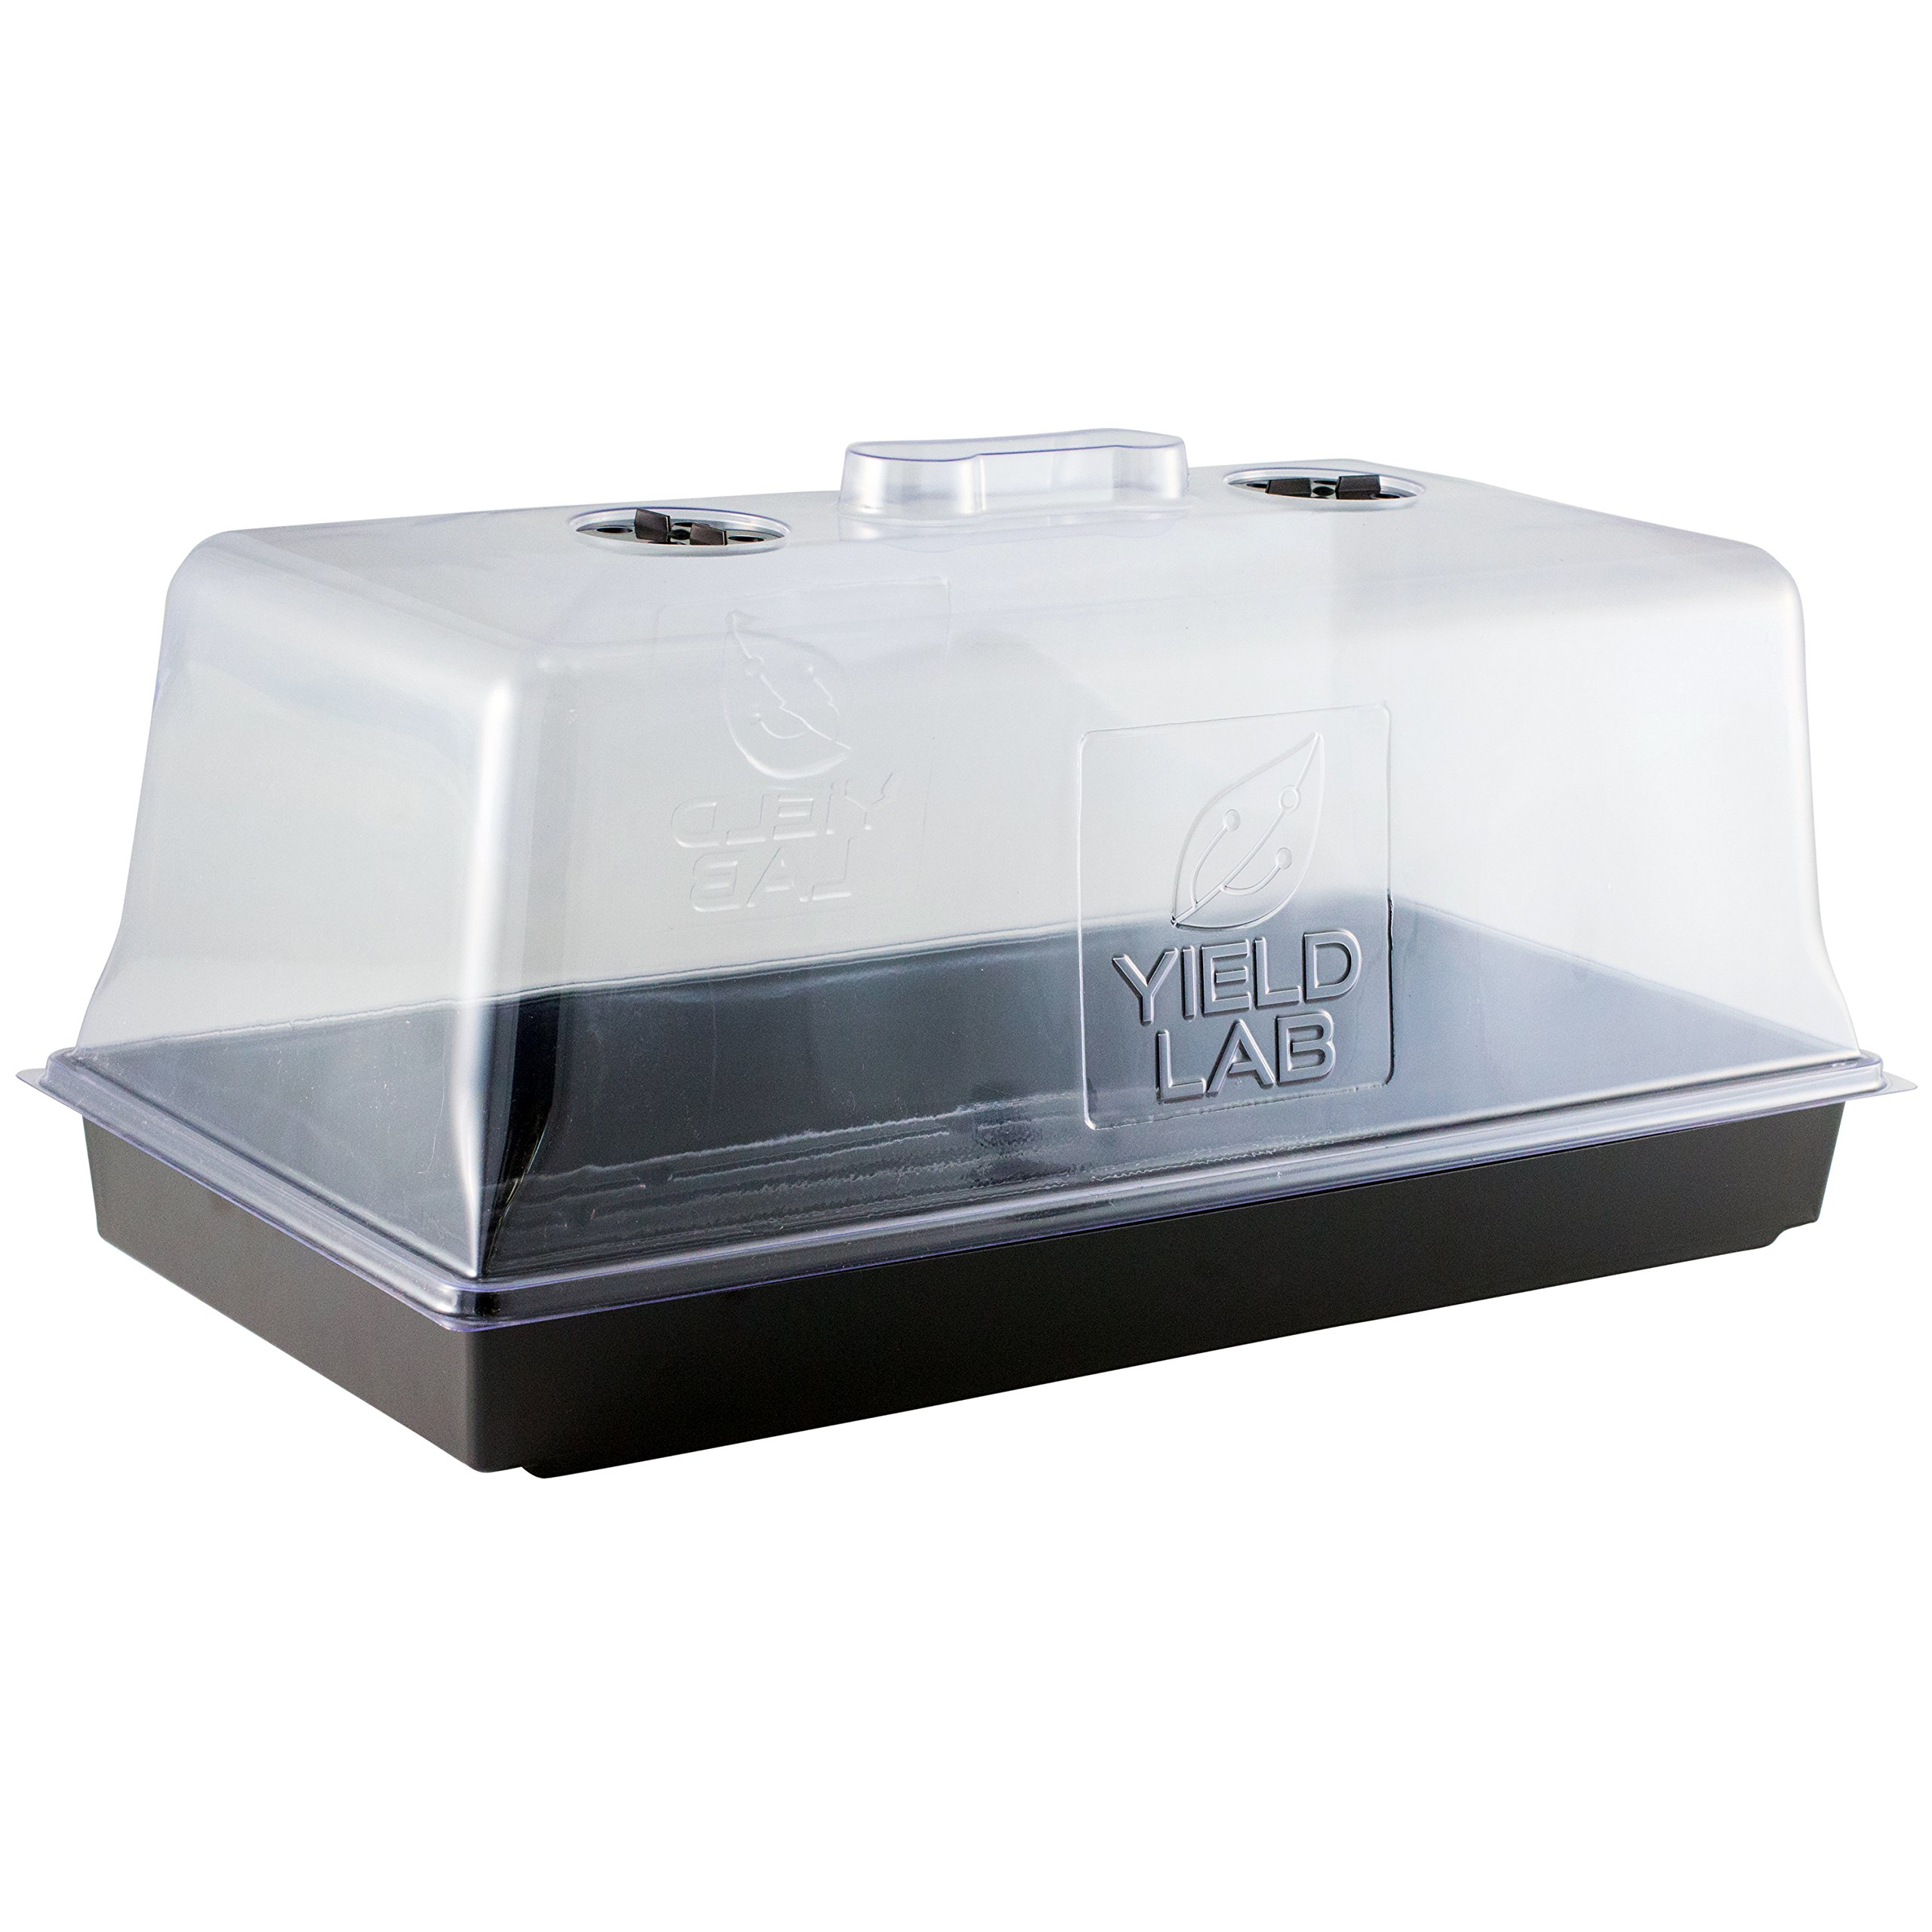 Yield Lab 10 x 20 Inch Black Plastic Propagation Tray - Hydroponic, Aeroponic, Horticulture Growing Equipment (1, Dome and Tray) by Yield Lab